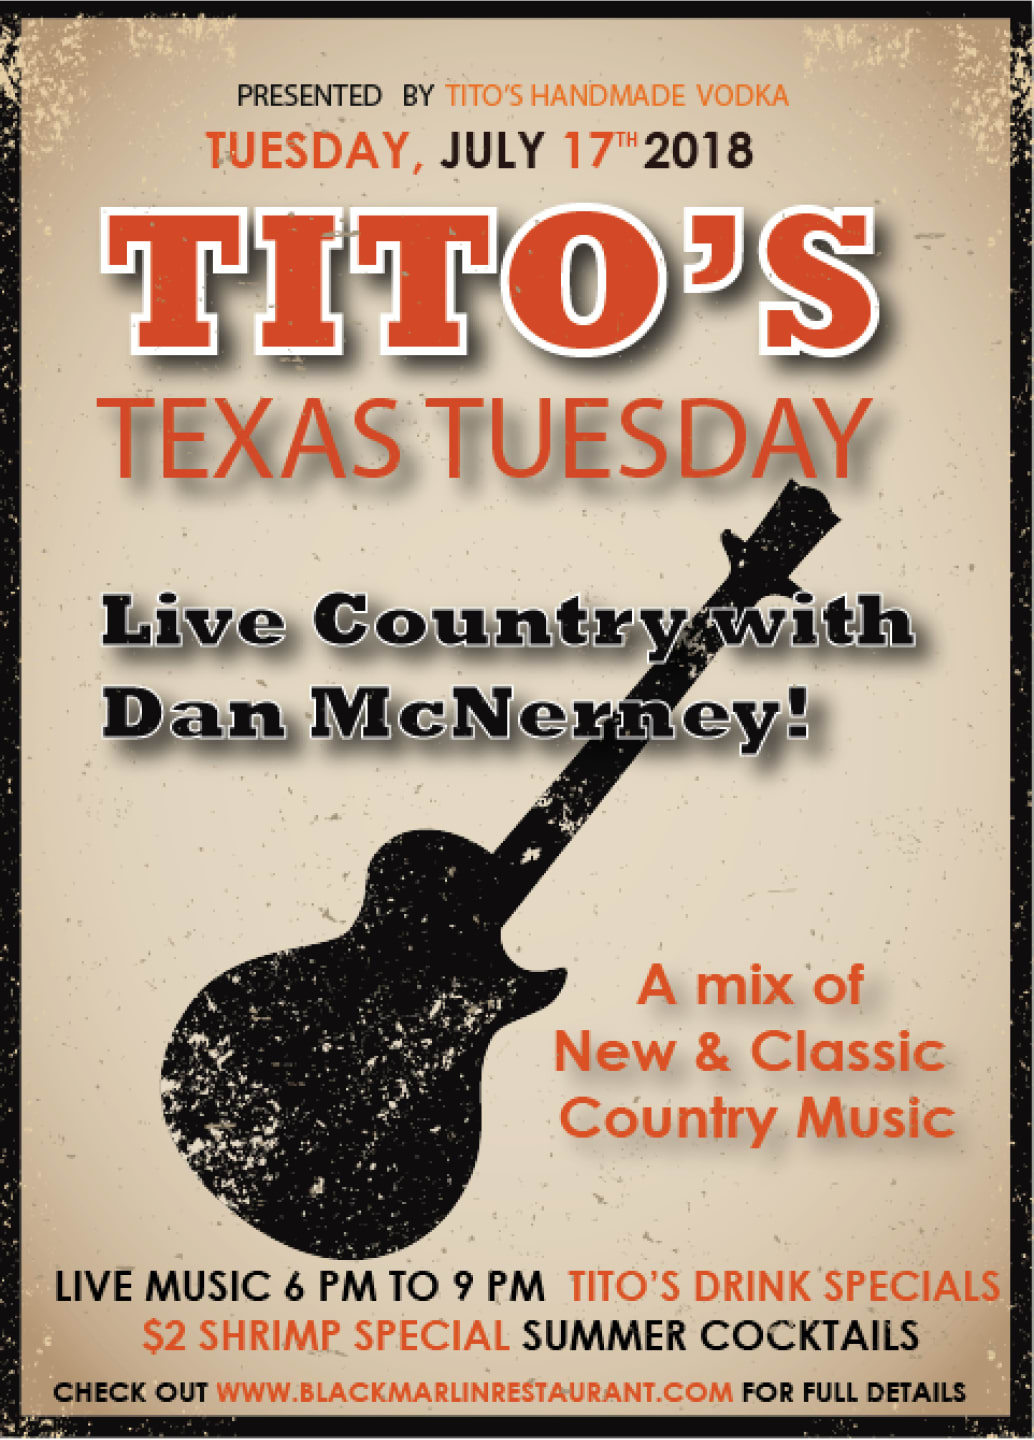 JULY 17 - Tito's Texas Tuesday